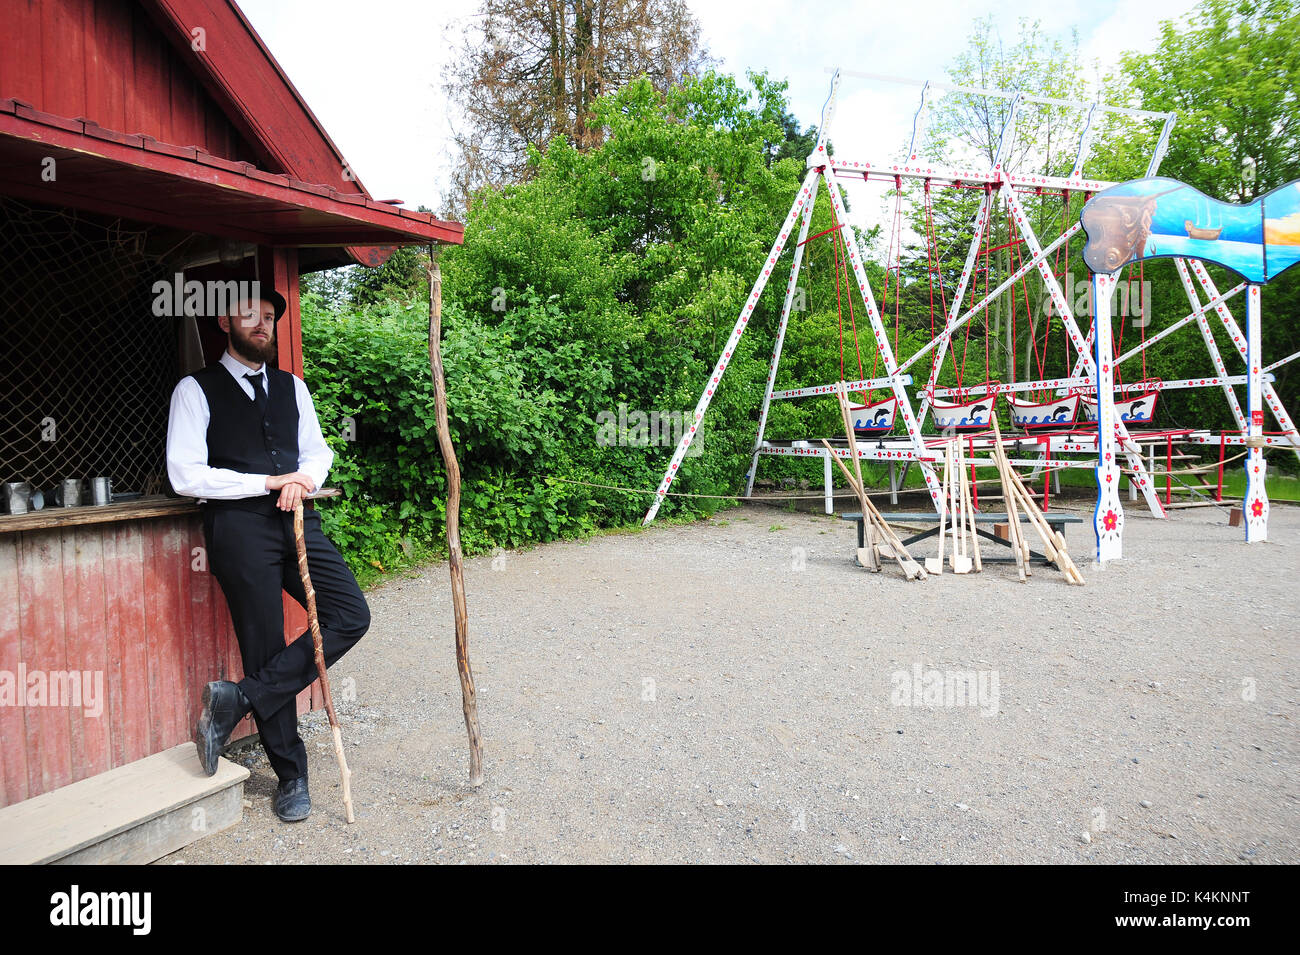 Travel back in time at Den Gamle By (The Old Town), an open-air folk museum known in Aarhus, Denmark. Stock Photo